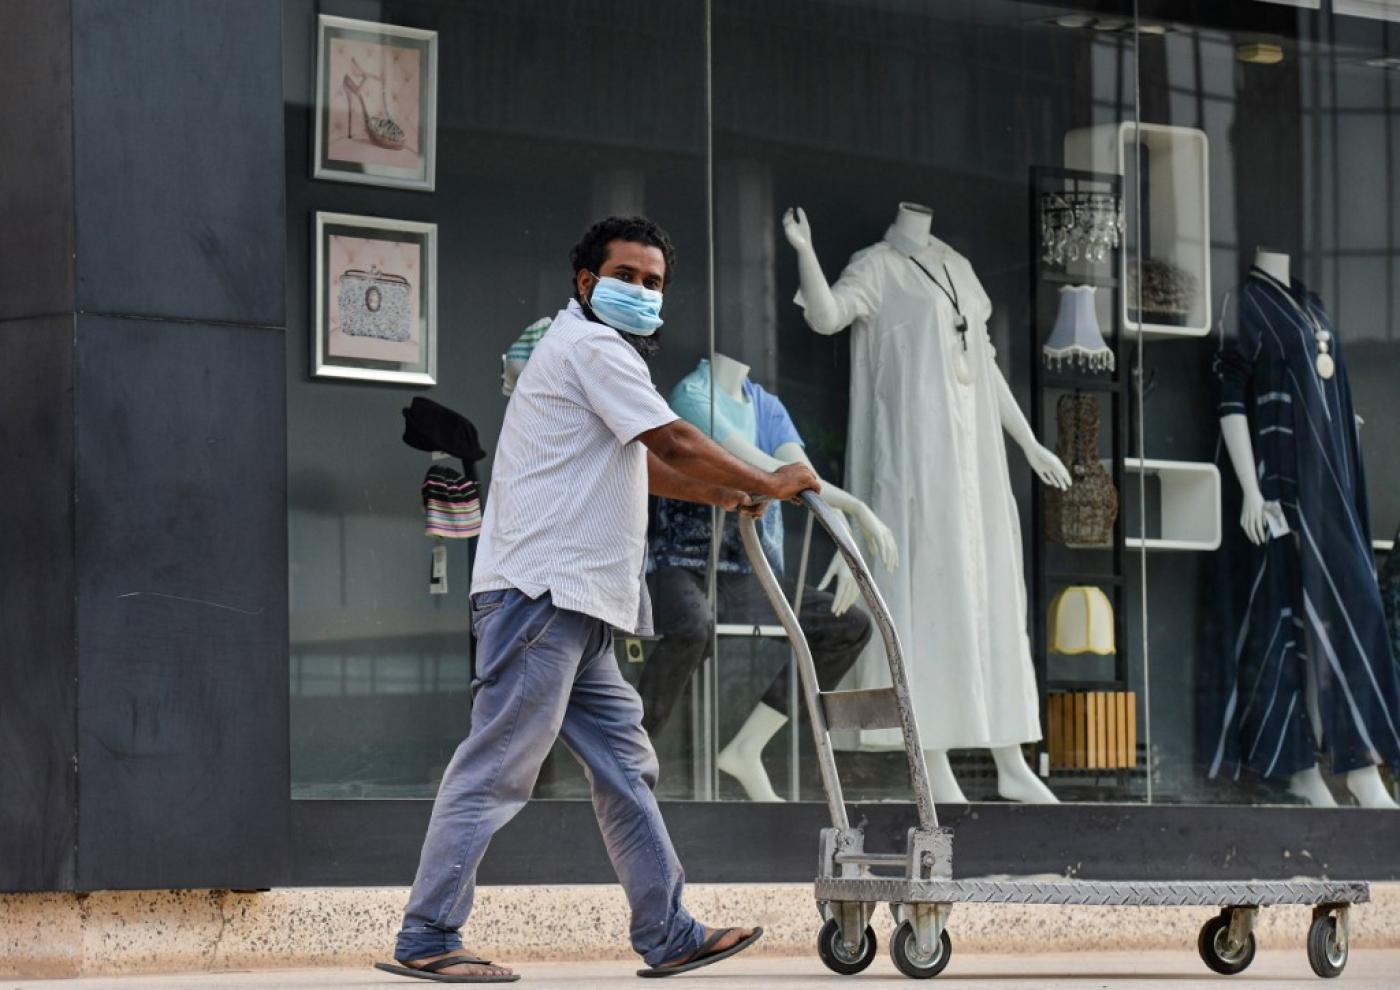 A Saudi worker wearing a mask passes a boutique shop. Riyadh reported more than 200,000 novel coronavirus cases.